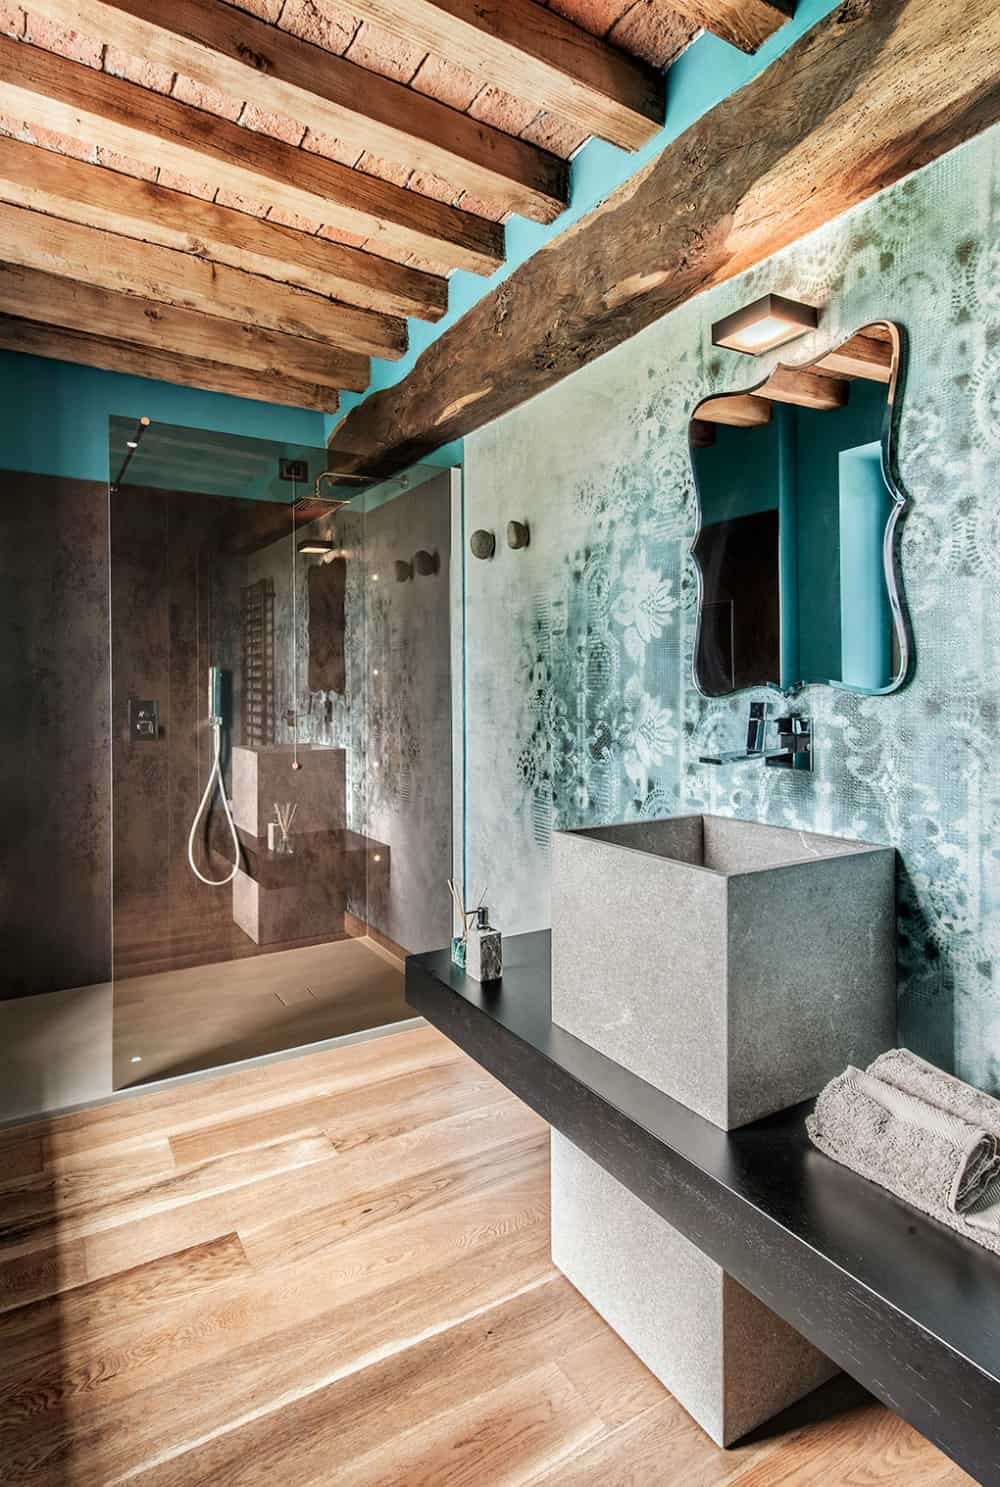 Fading lace patterns contrast with the worn wooden beams in the second bathroom